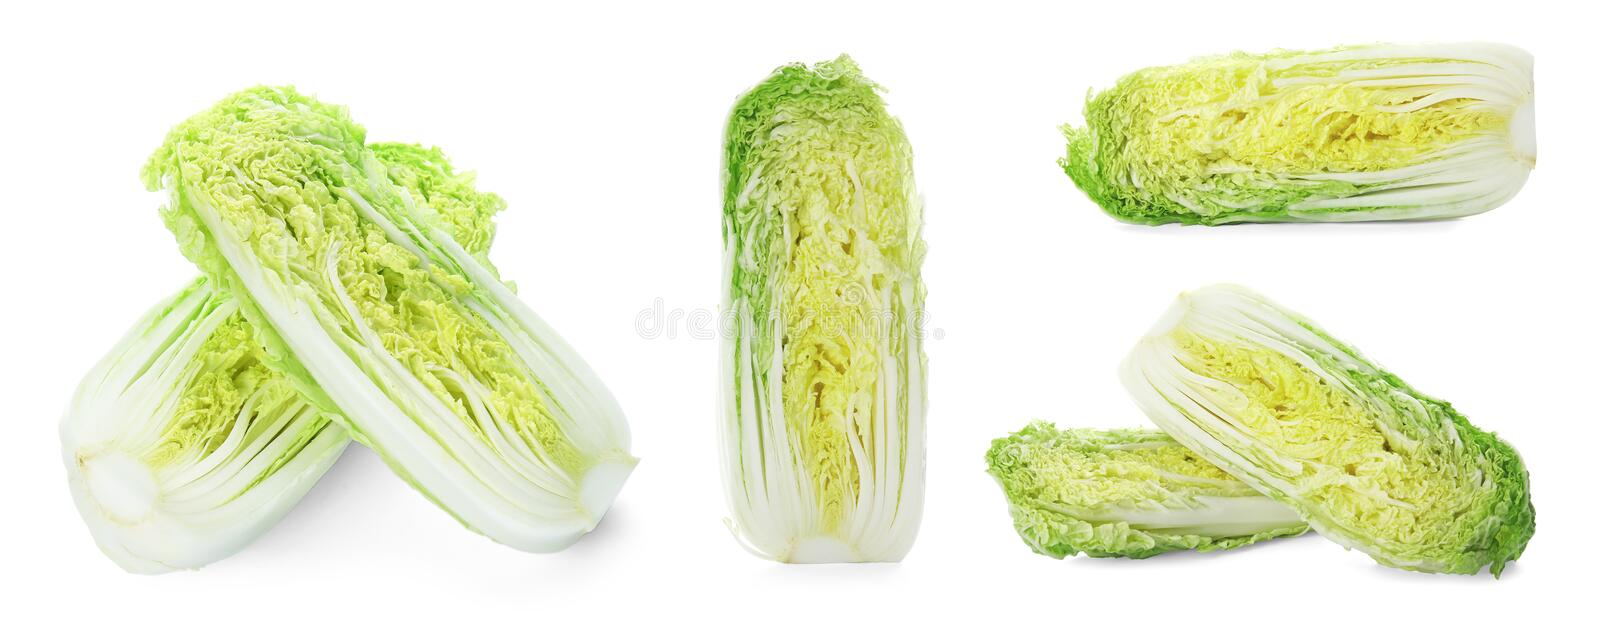 Set with cut fresh Chinese cabbages royalty free stock photos